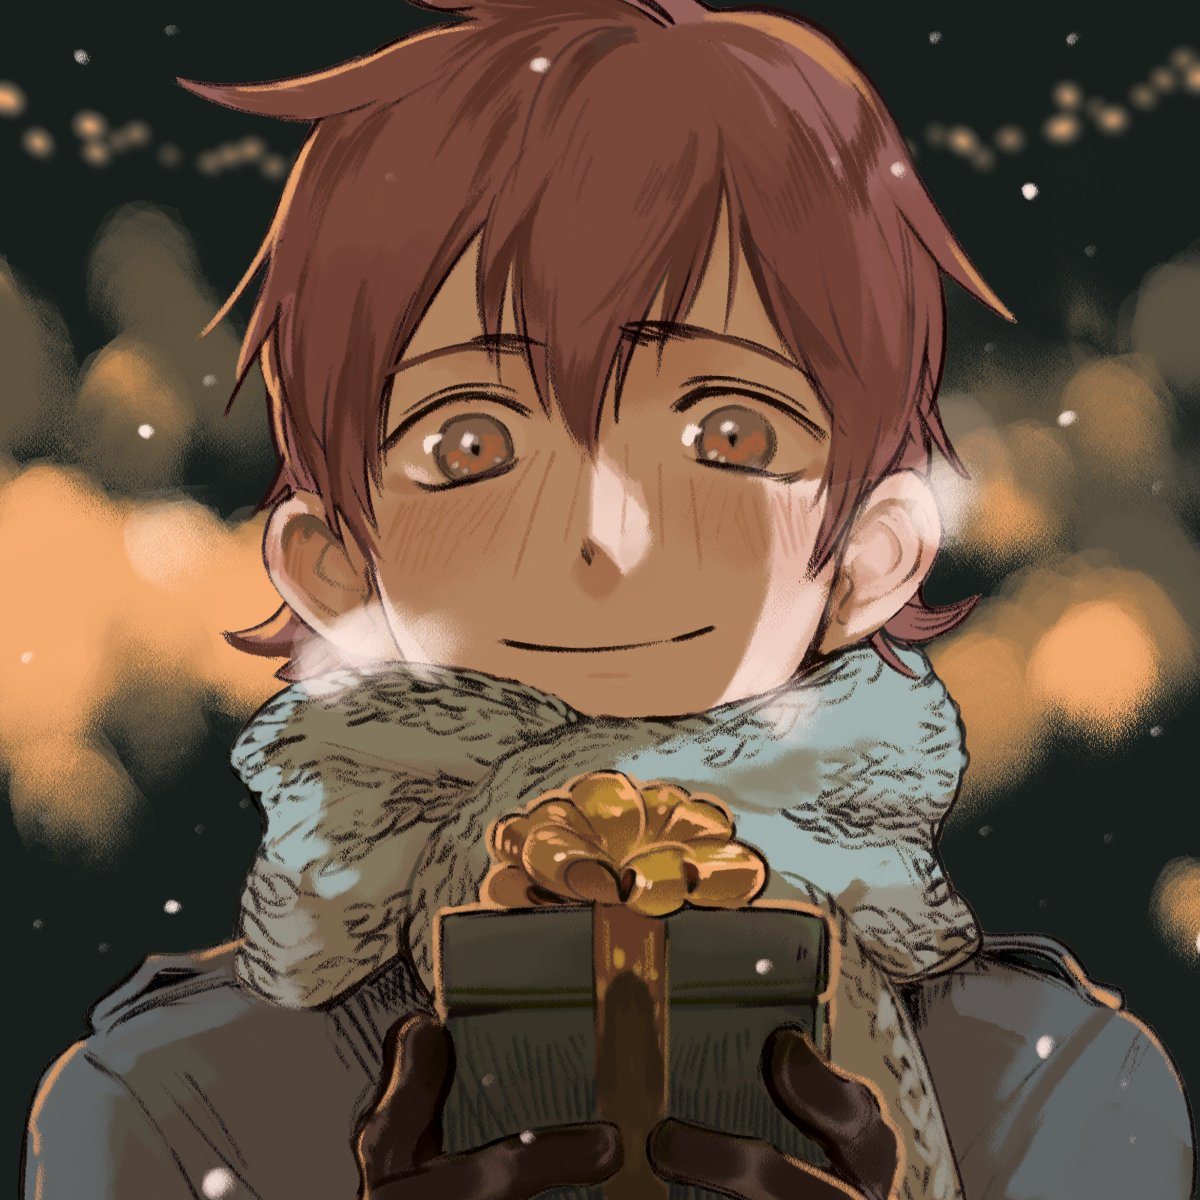 due for an icon update! ricken on a christmas date T//T in which his smile is the best gift of all <br>http://pic.twitter.com/kQF5BGHvkh